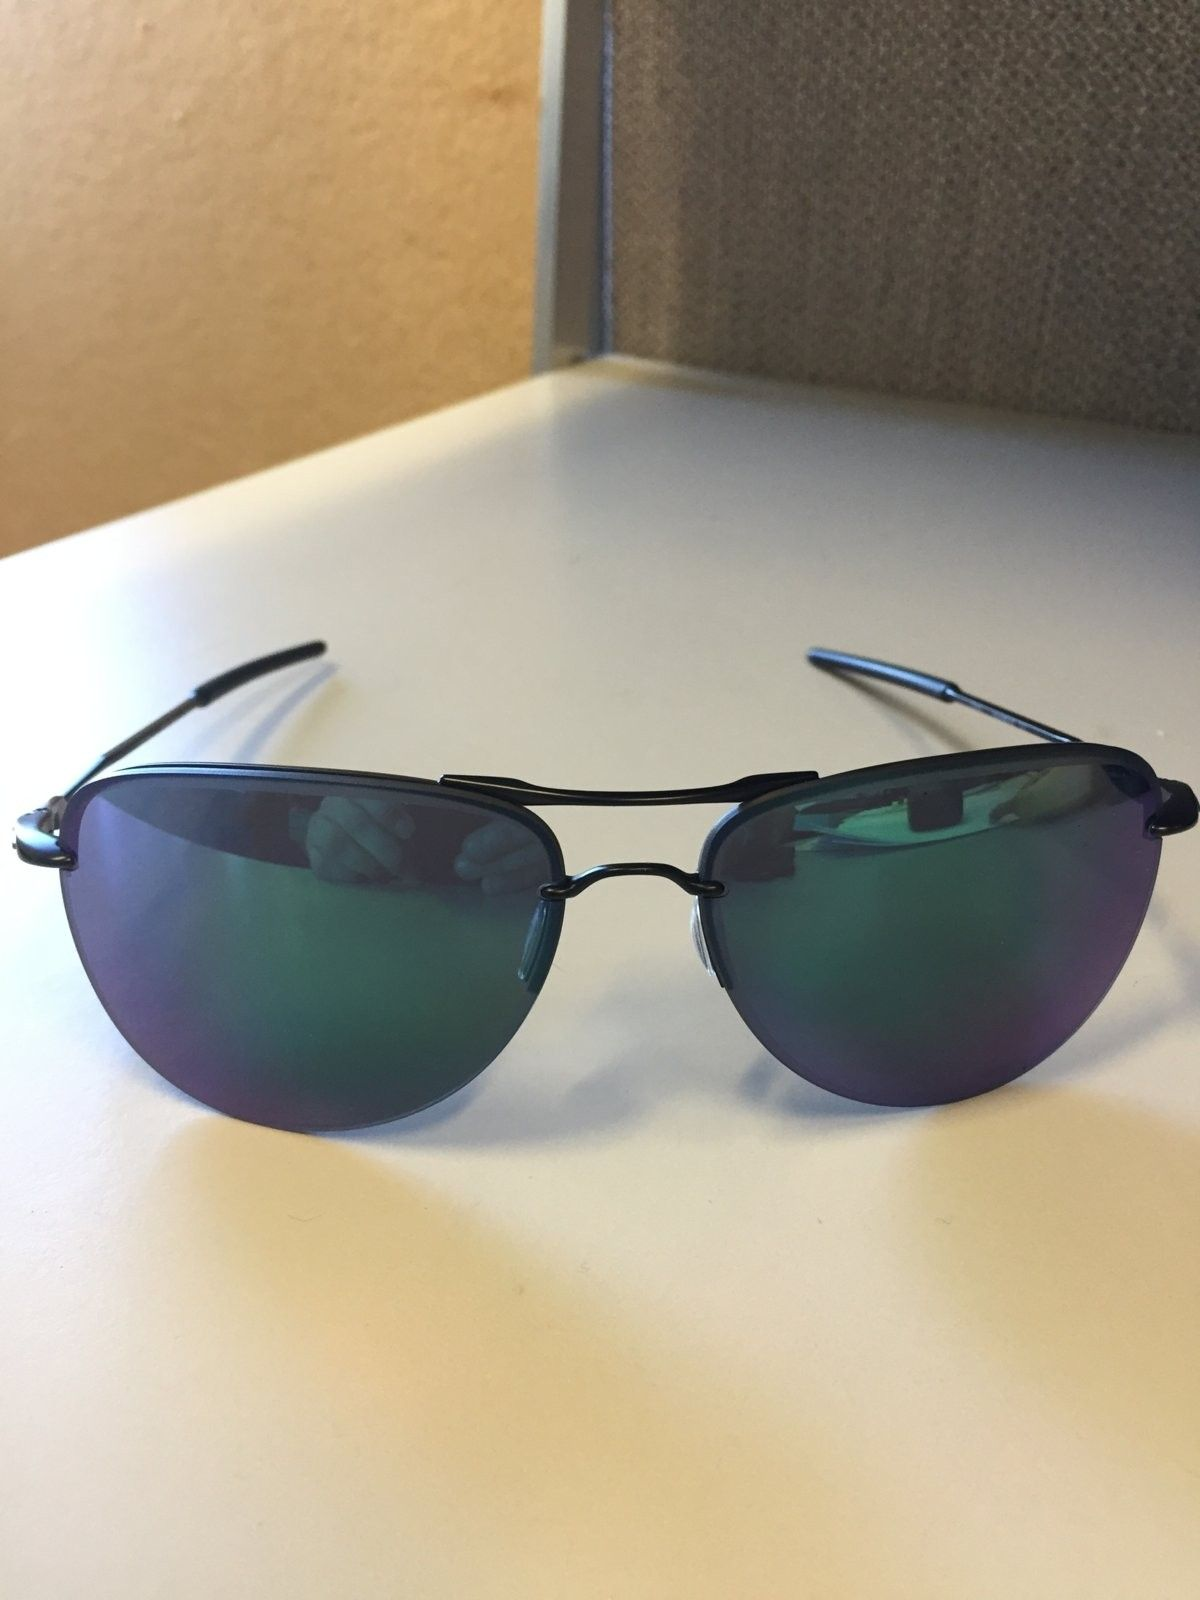 New Oakley Tailpin Jade $110 All In - IMG_1544.JPG